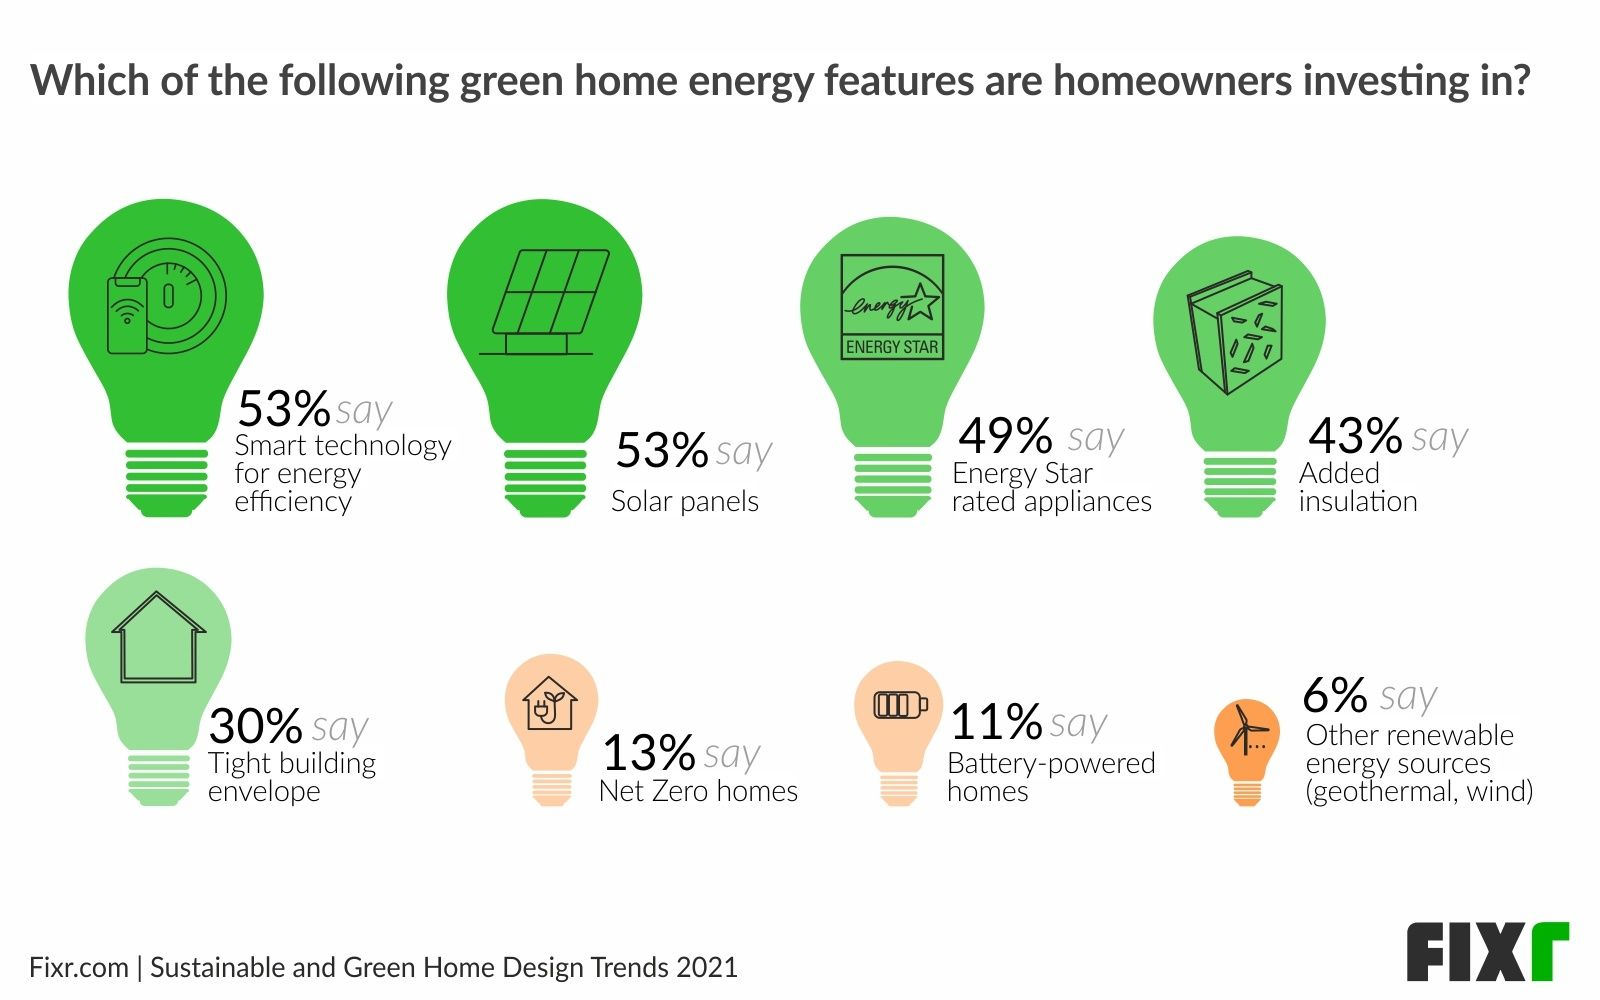 Smart Home Technology and Solar Panels are the Most Popular green Green Home Technologies